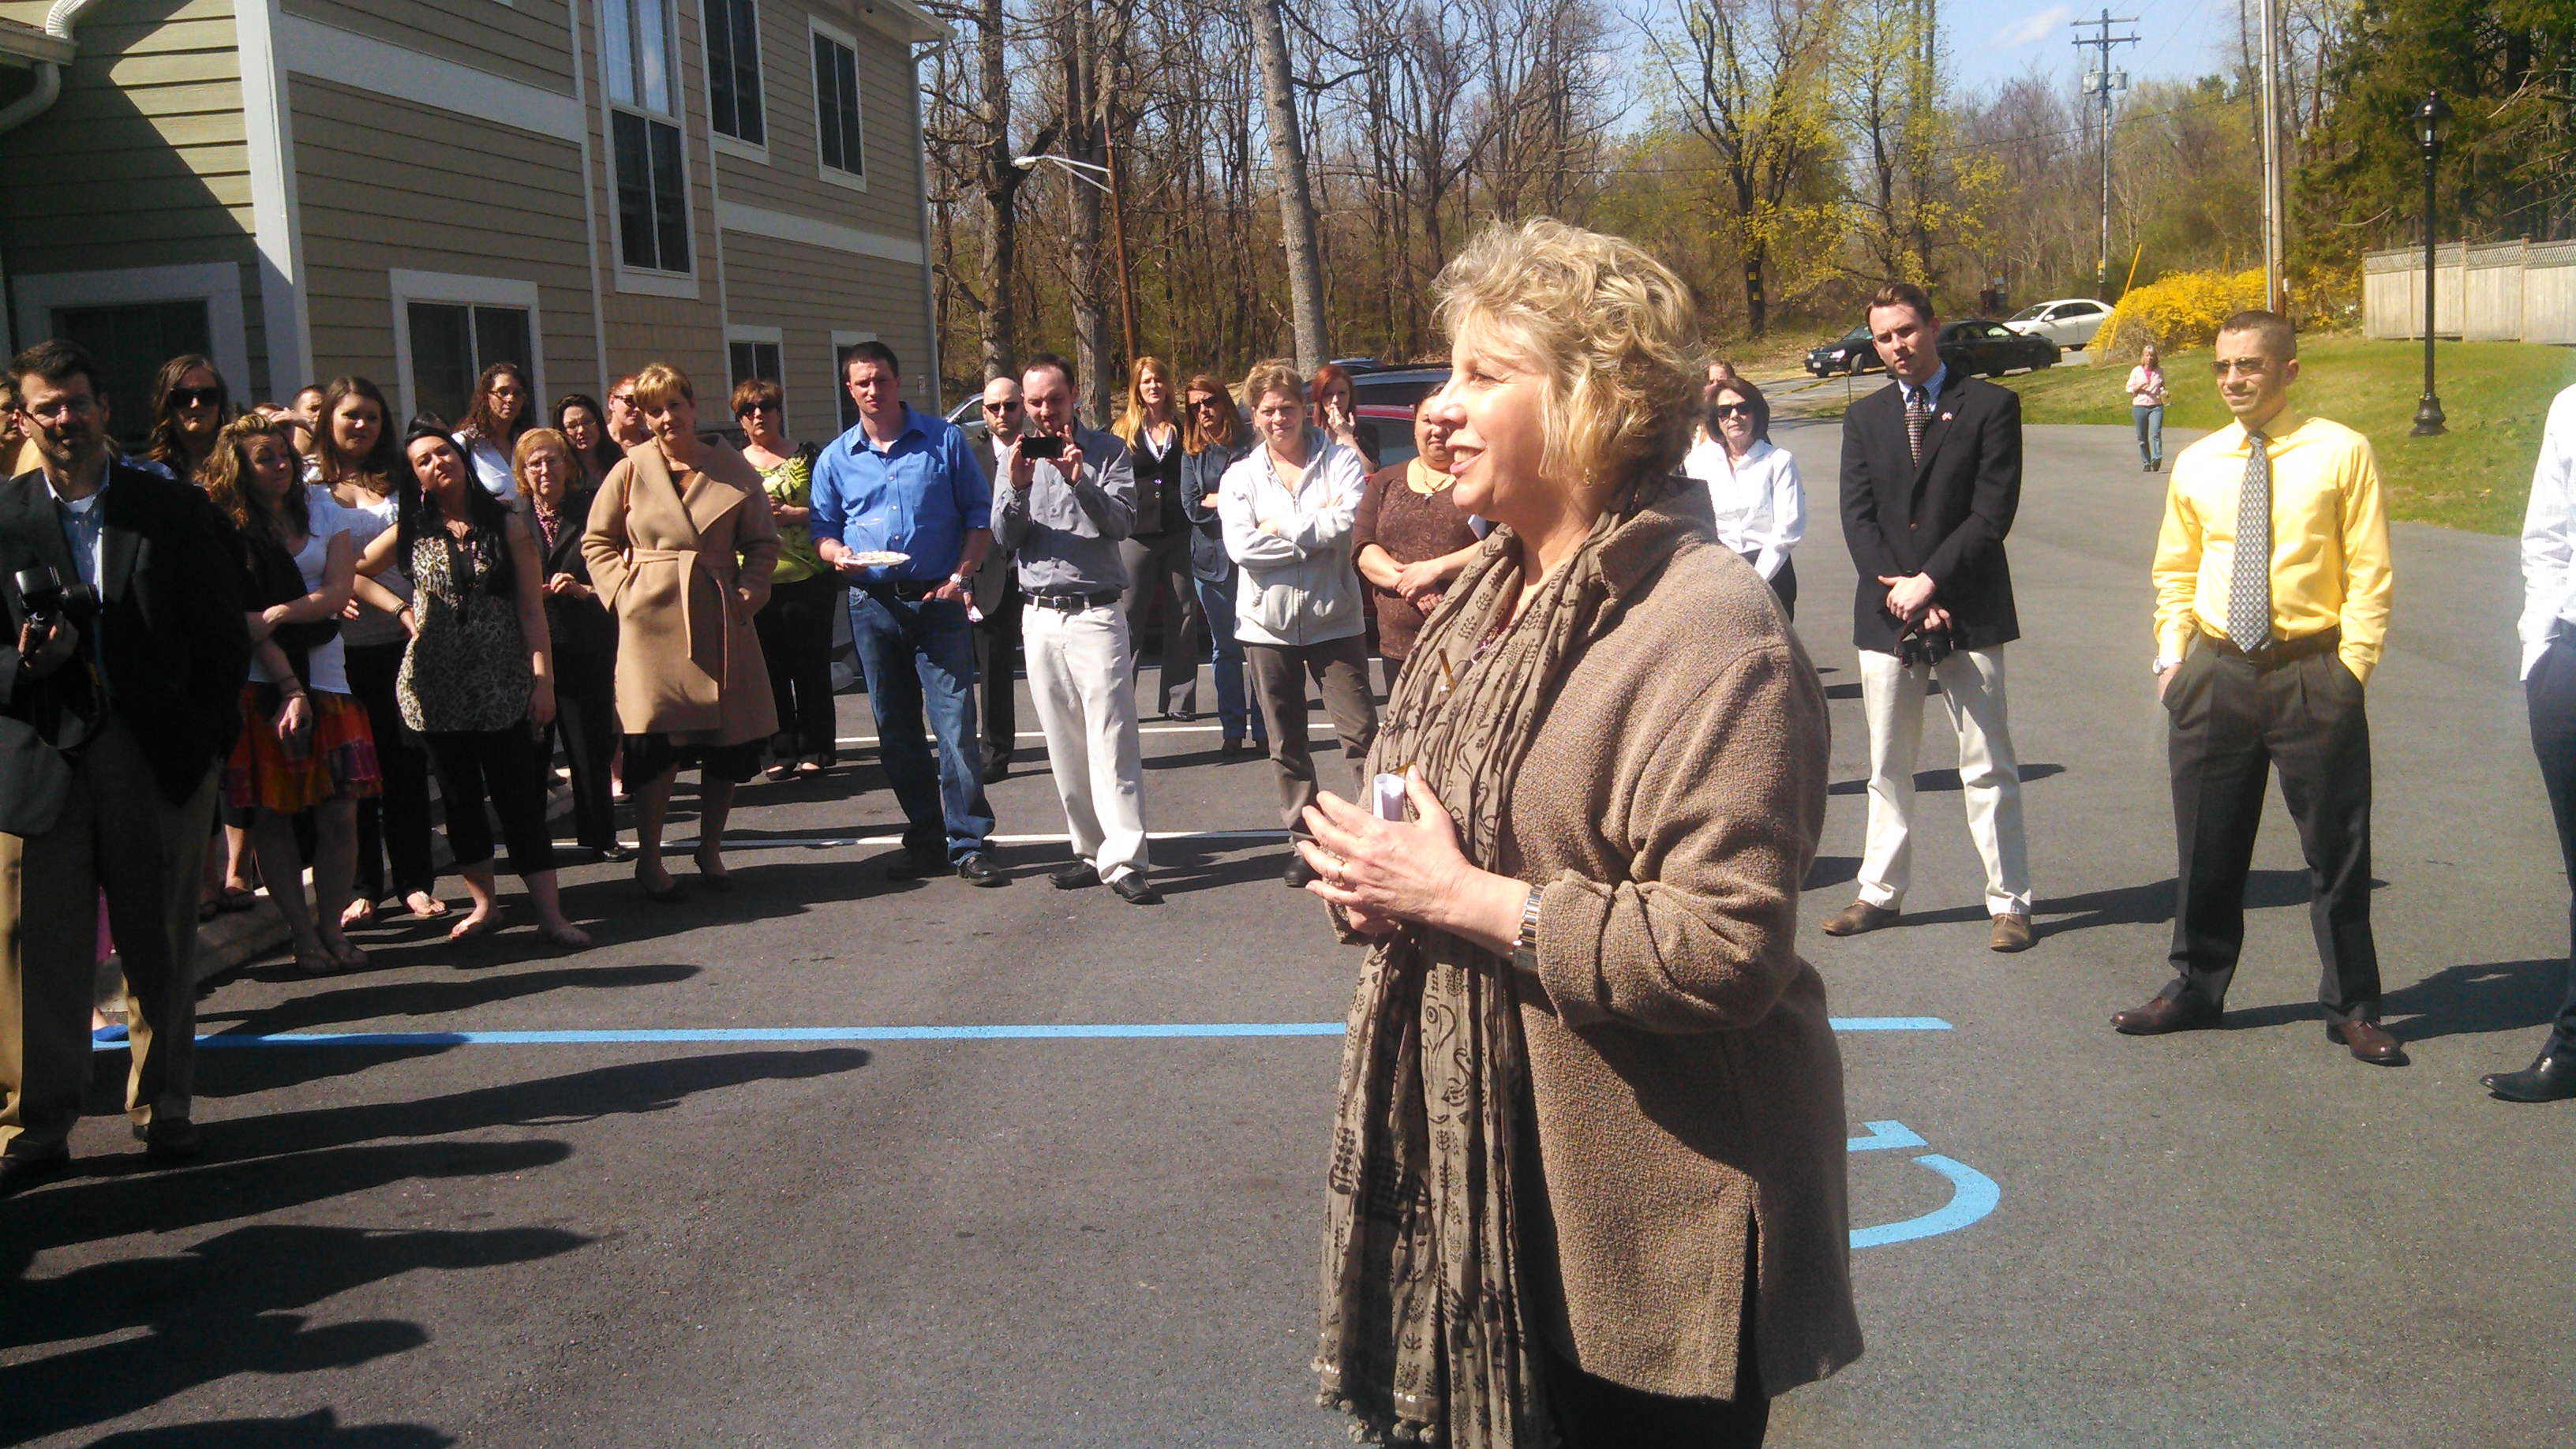 Barrett speaking at the grand opening of the Mid Hudson Addiction Recovery Center women's facility in the Town of Poughkeepsie.